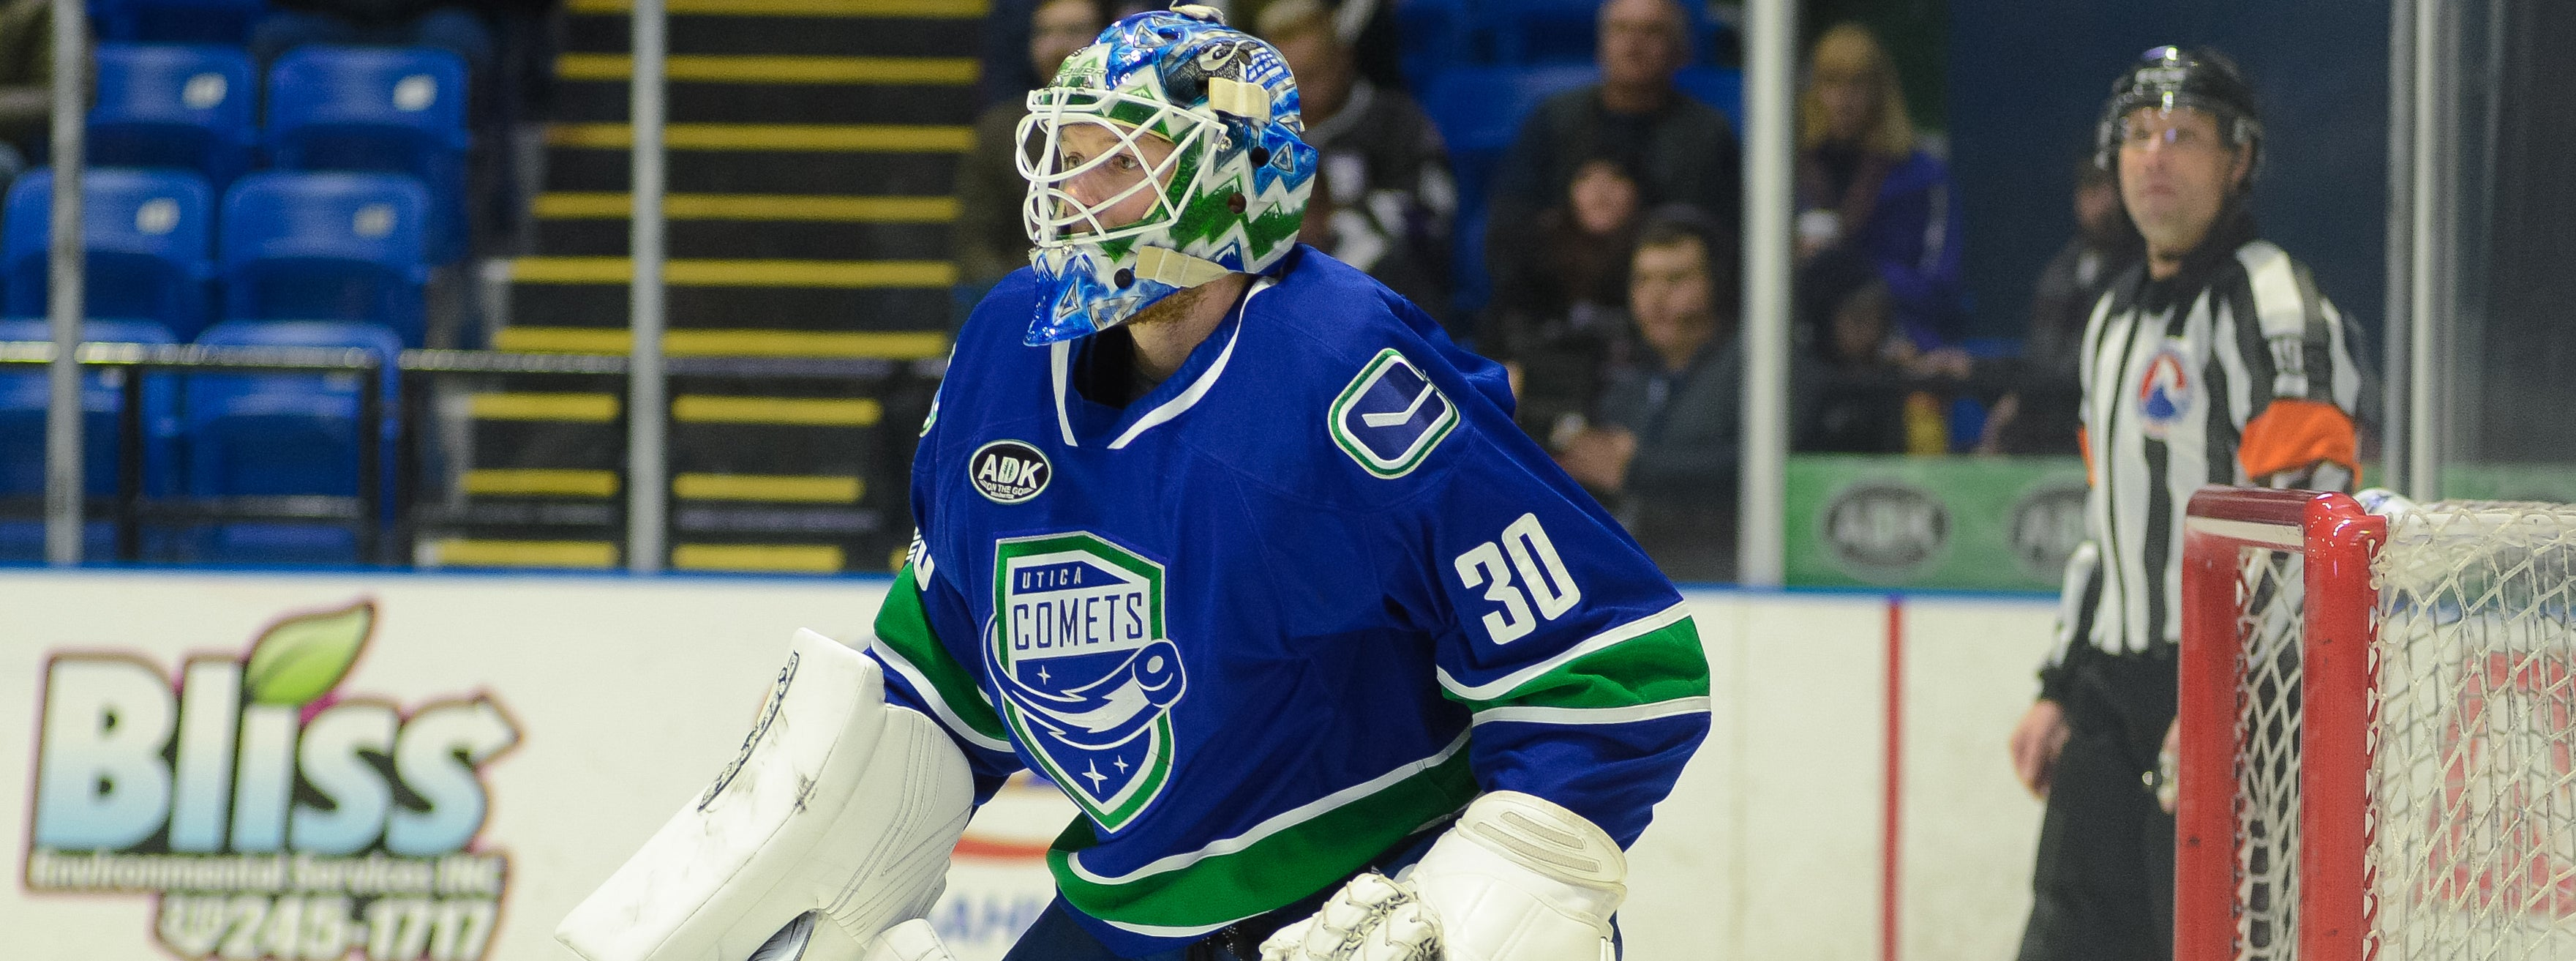 CANUCKS RECALL DEMKO FROM THE COMETS